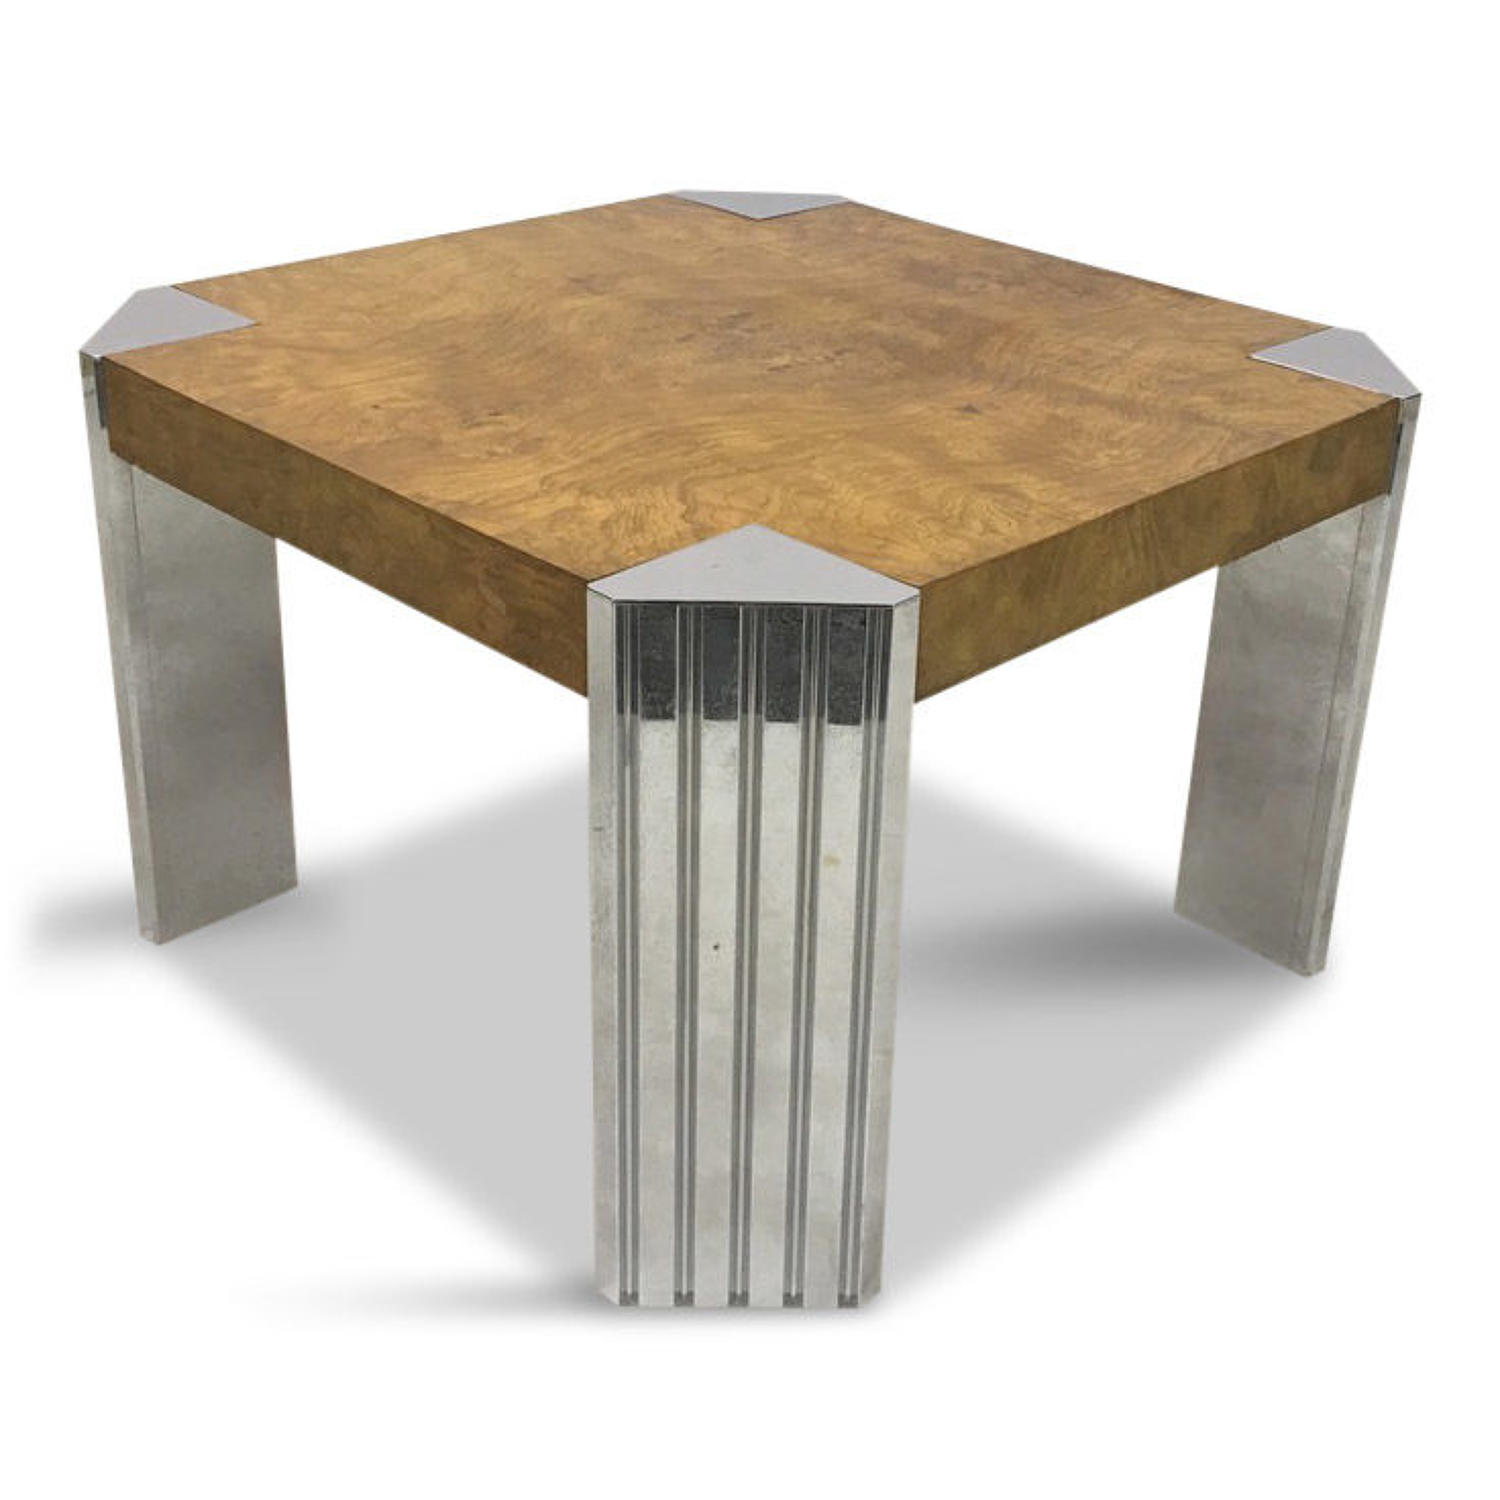 1970s burl wood and chrome coffee table by Milo Baughman